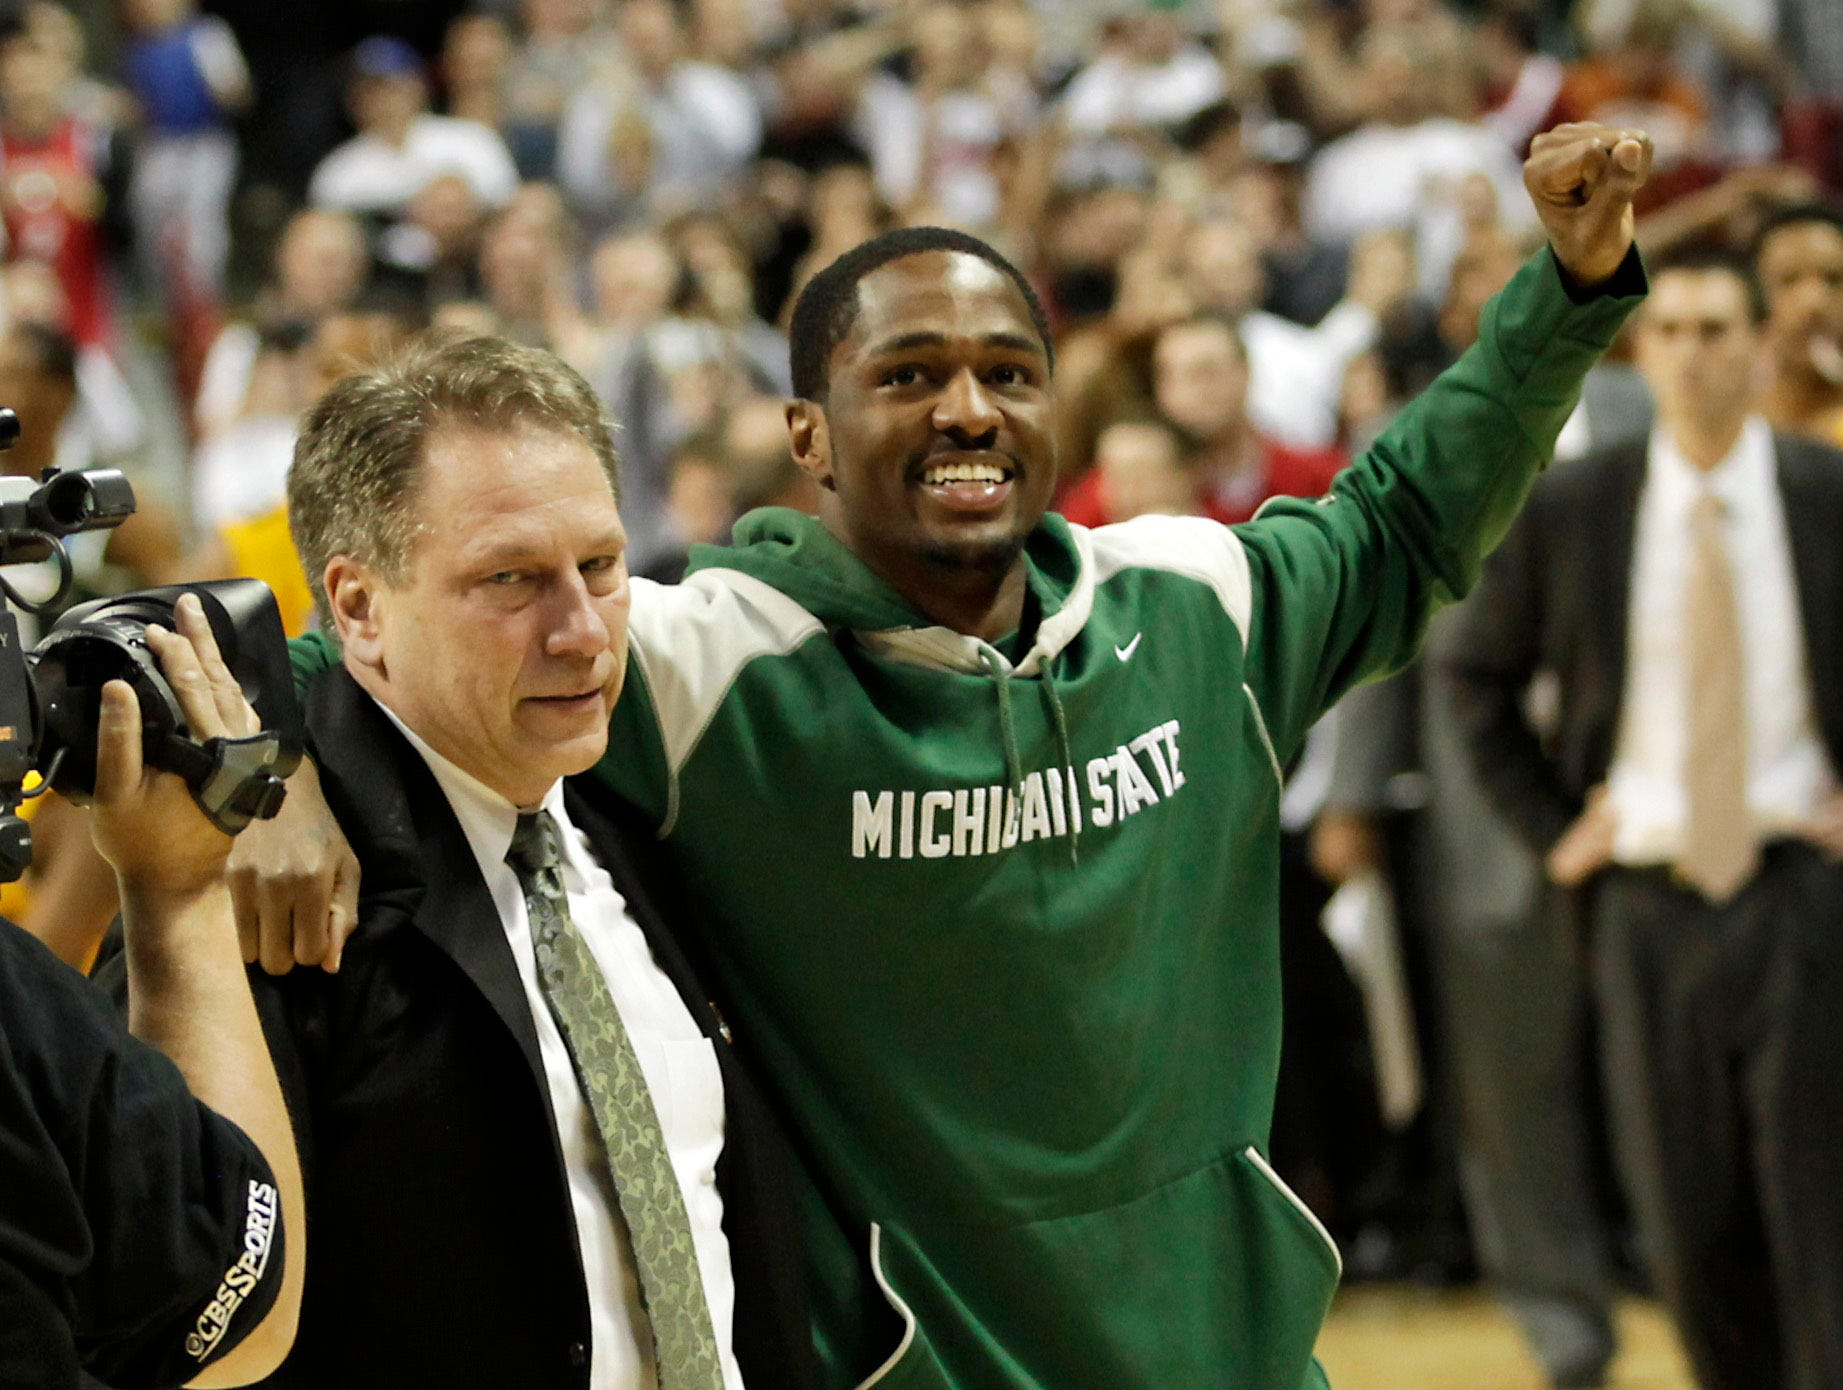 Injured Michigan State player Kalin Lucas, right, celebrates with Michigan State head coach Tom Izzo after Michigan State beat Maryland 85-83 in an NCAA second-round college basketball game in Spokane, Wash., Sunday, March 21, 2010. Lucas went down in the first half with an ankle injury.